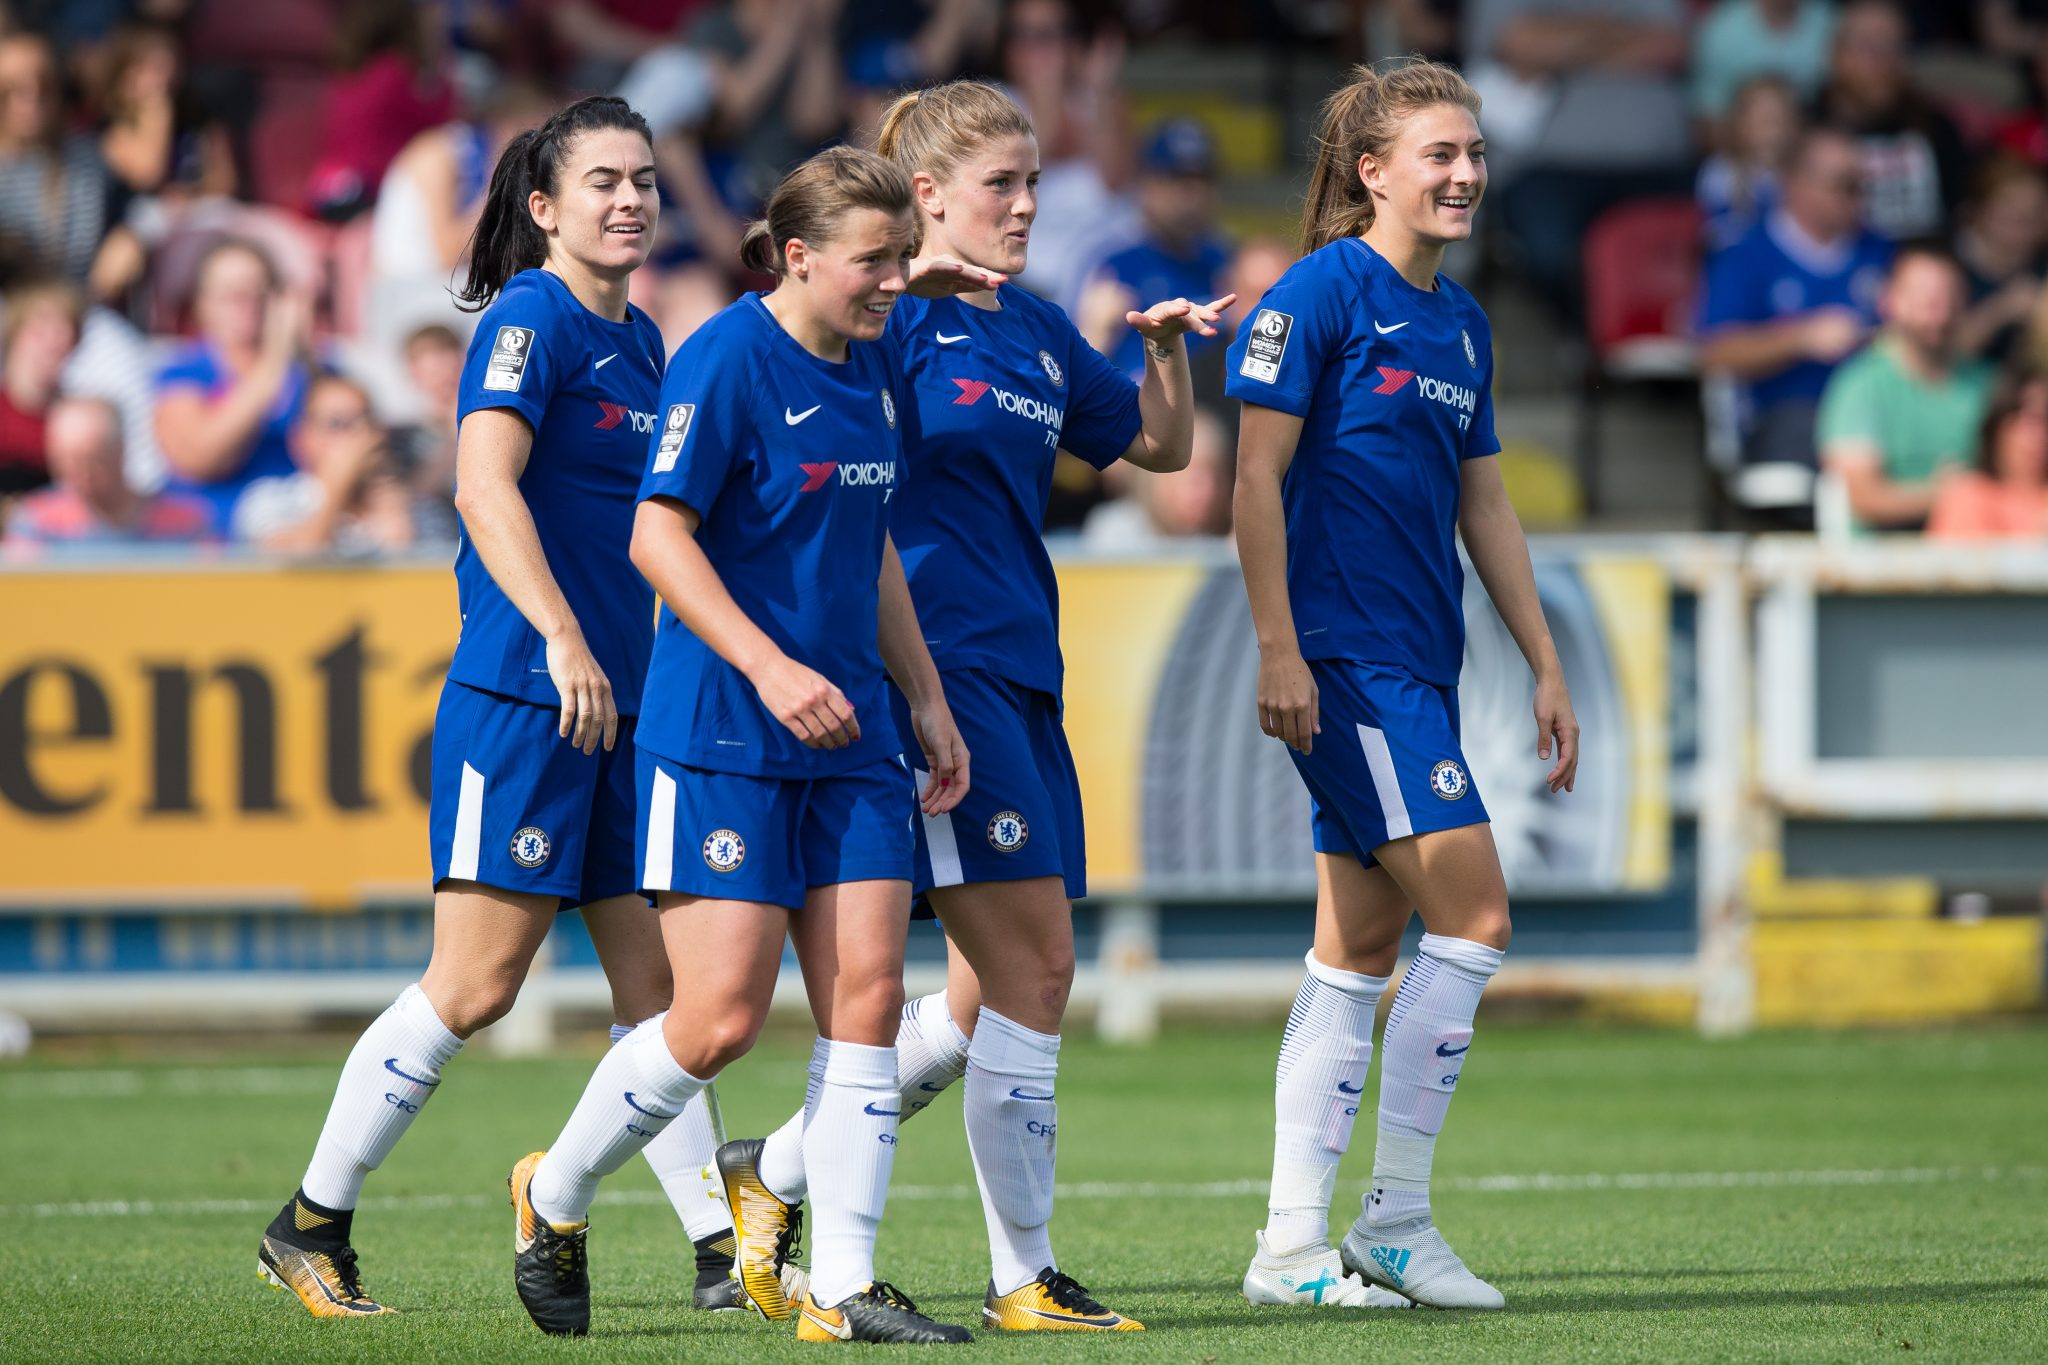 chelsea single lesbian women England is obsessed with footballers wags and now the women's world   some of them are single, and some of them have girlfriends or wives  lgbt  stood for (it's lesbian, gay, bisexual and trans), and arsene wenger.